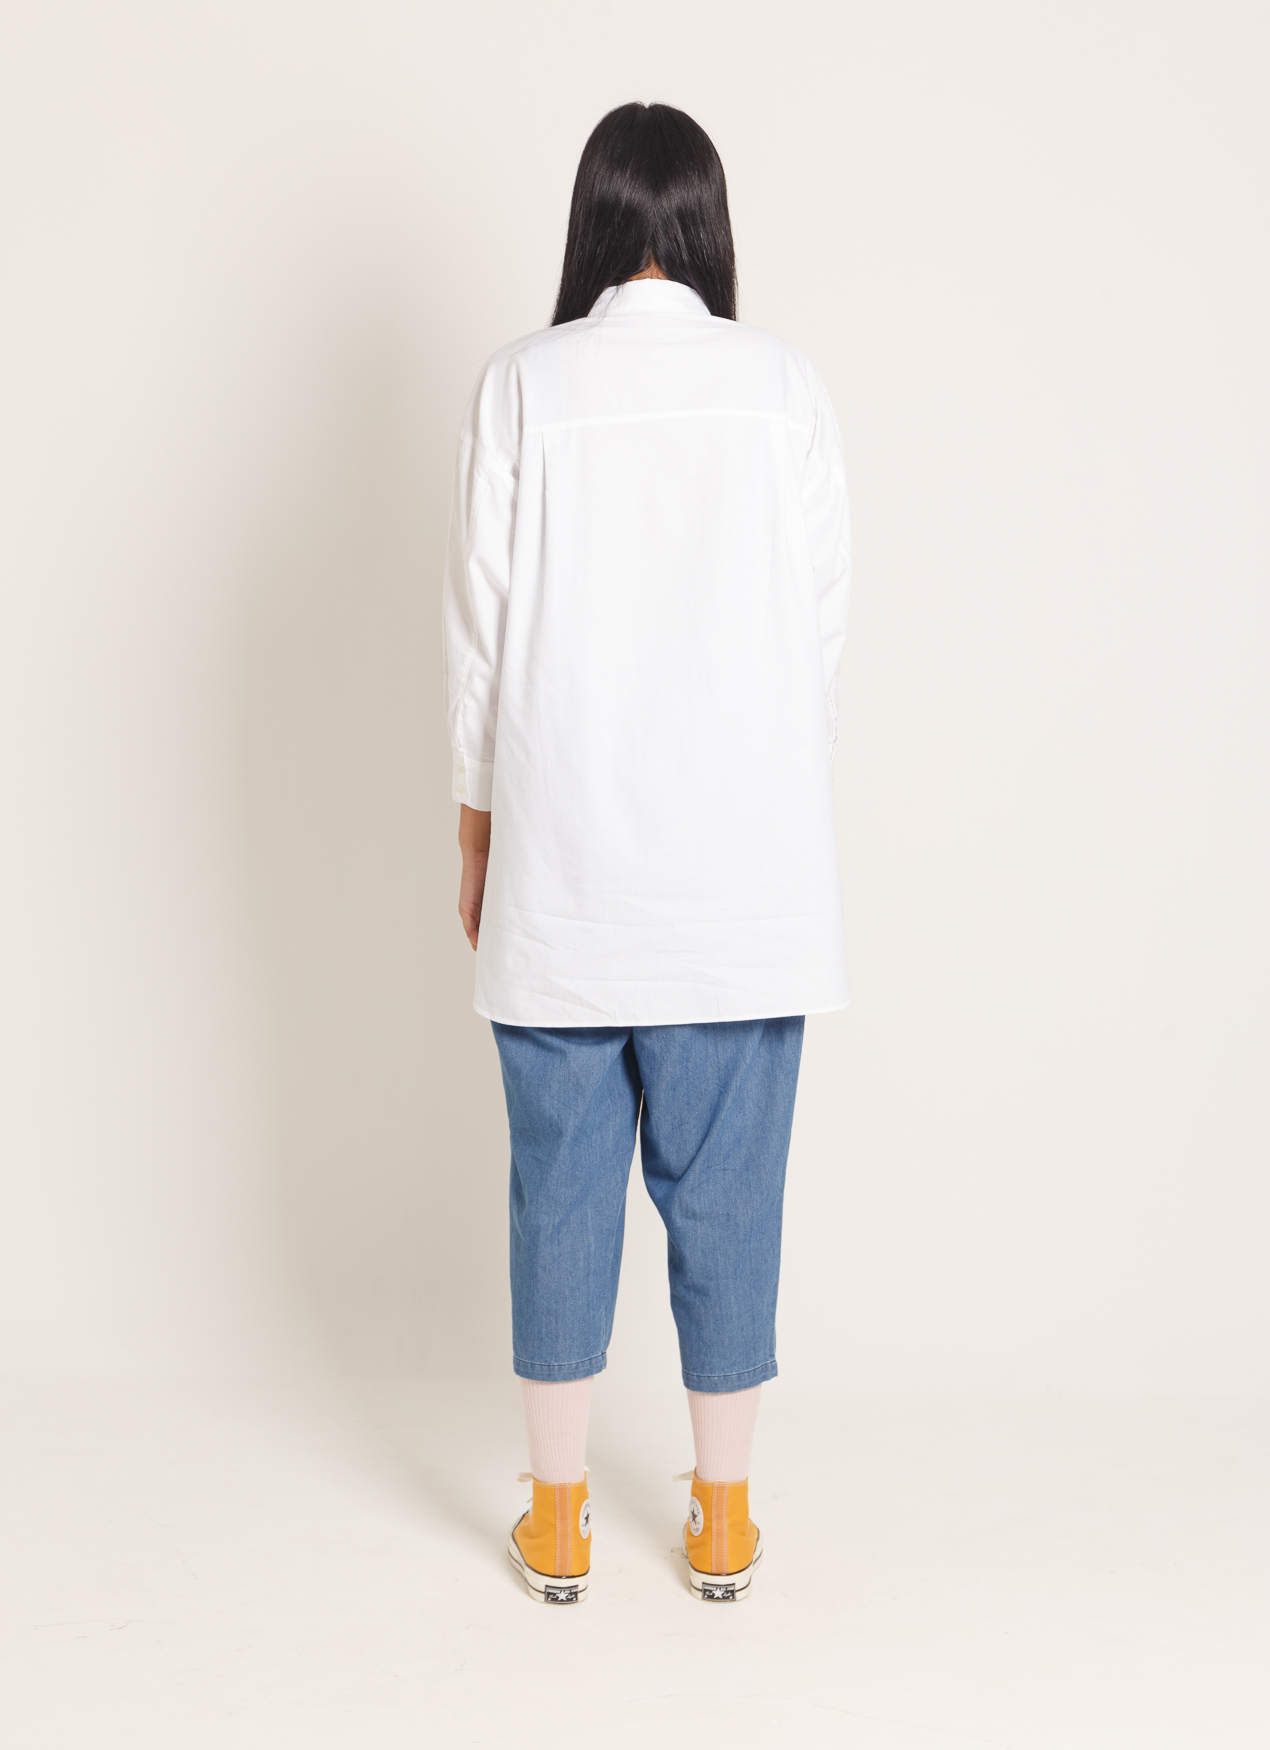 American Holic Solana Top x OWI - Off White